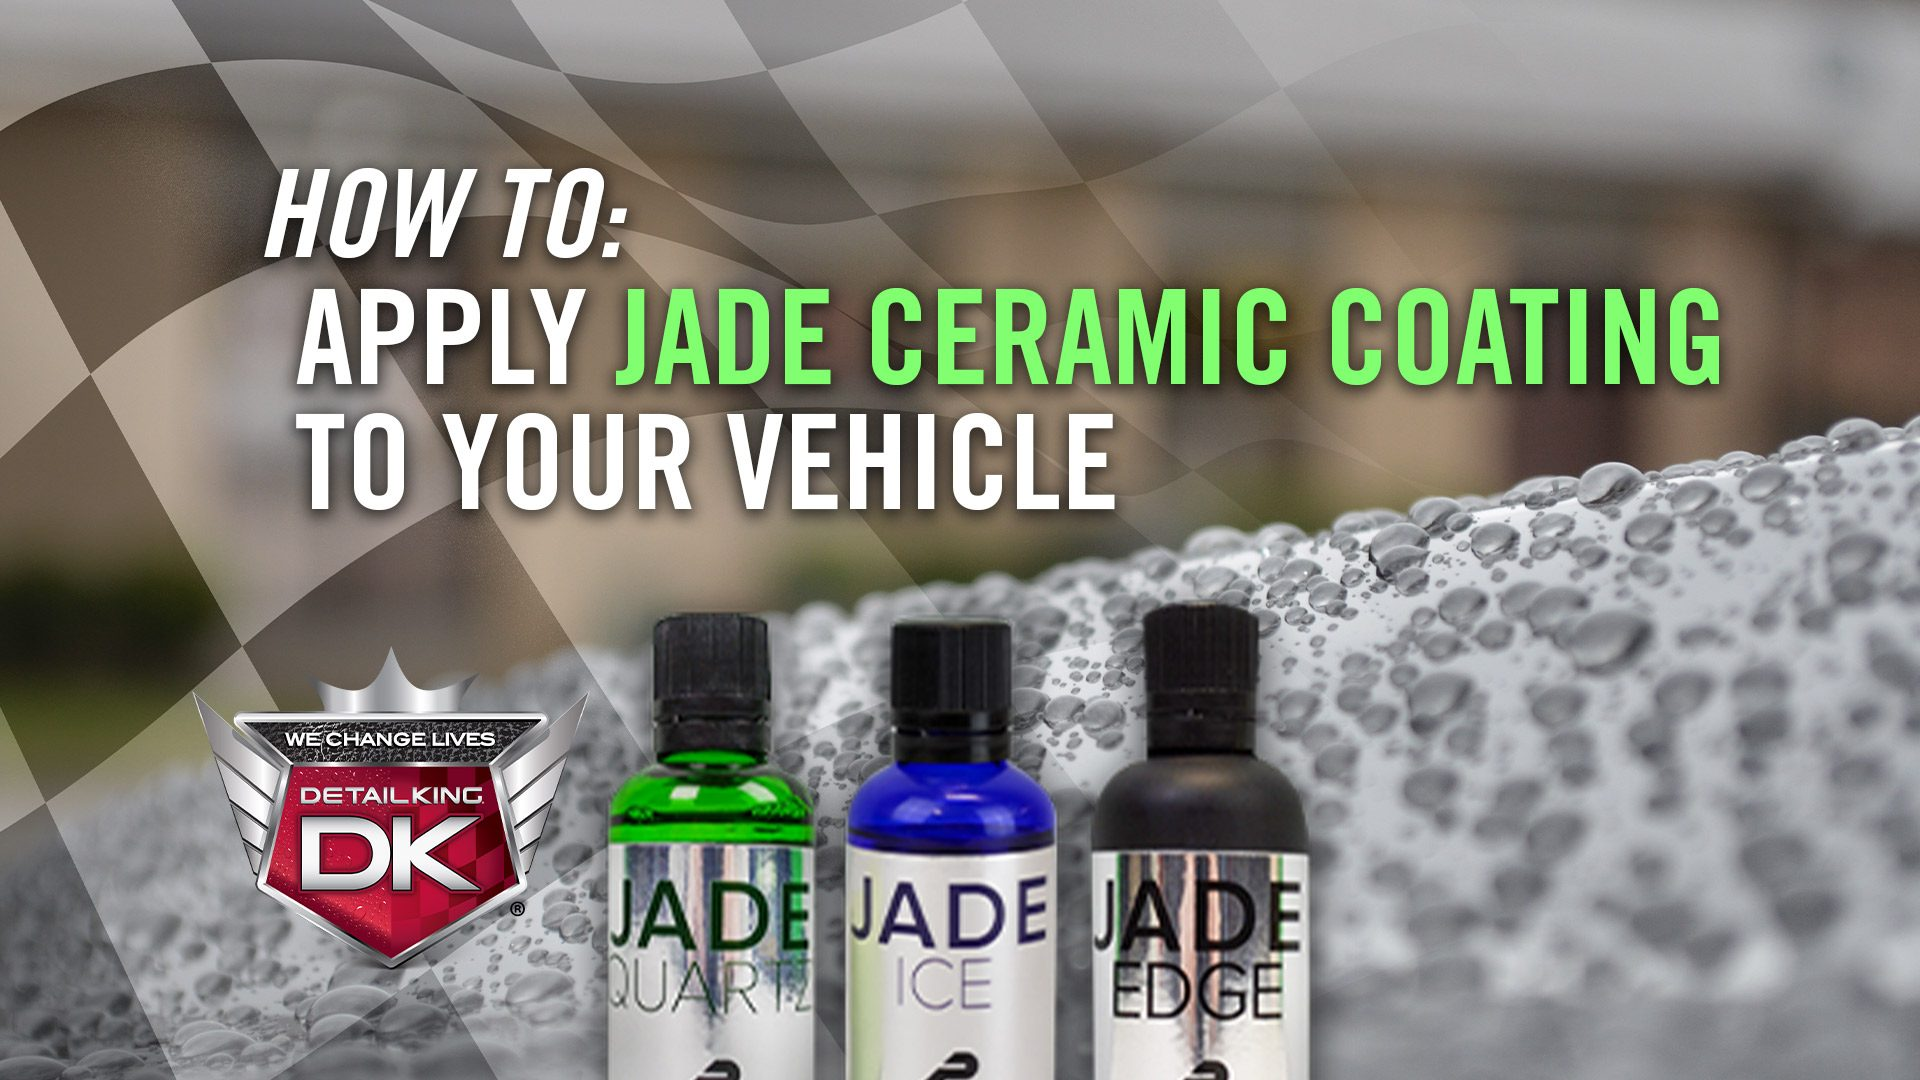 How To: Apply Jade Ceramic Coating to Your Vehicle!